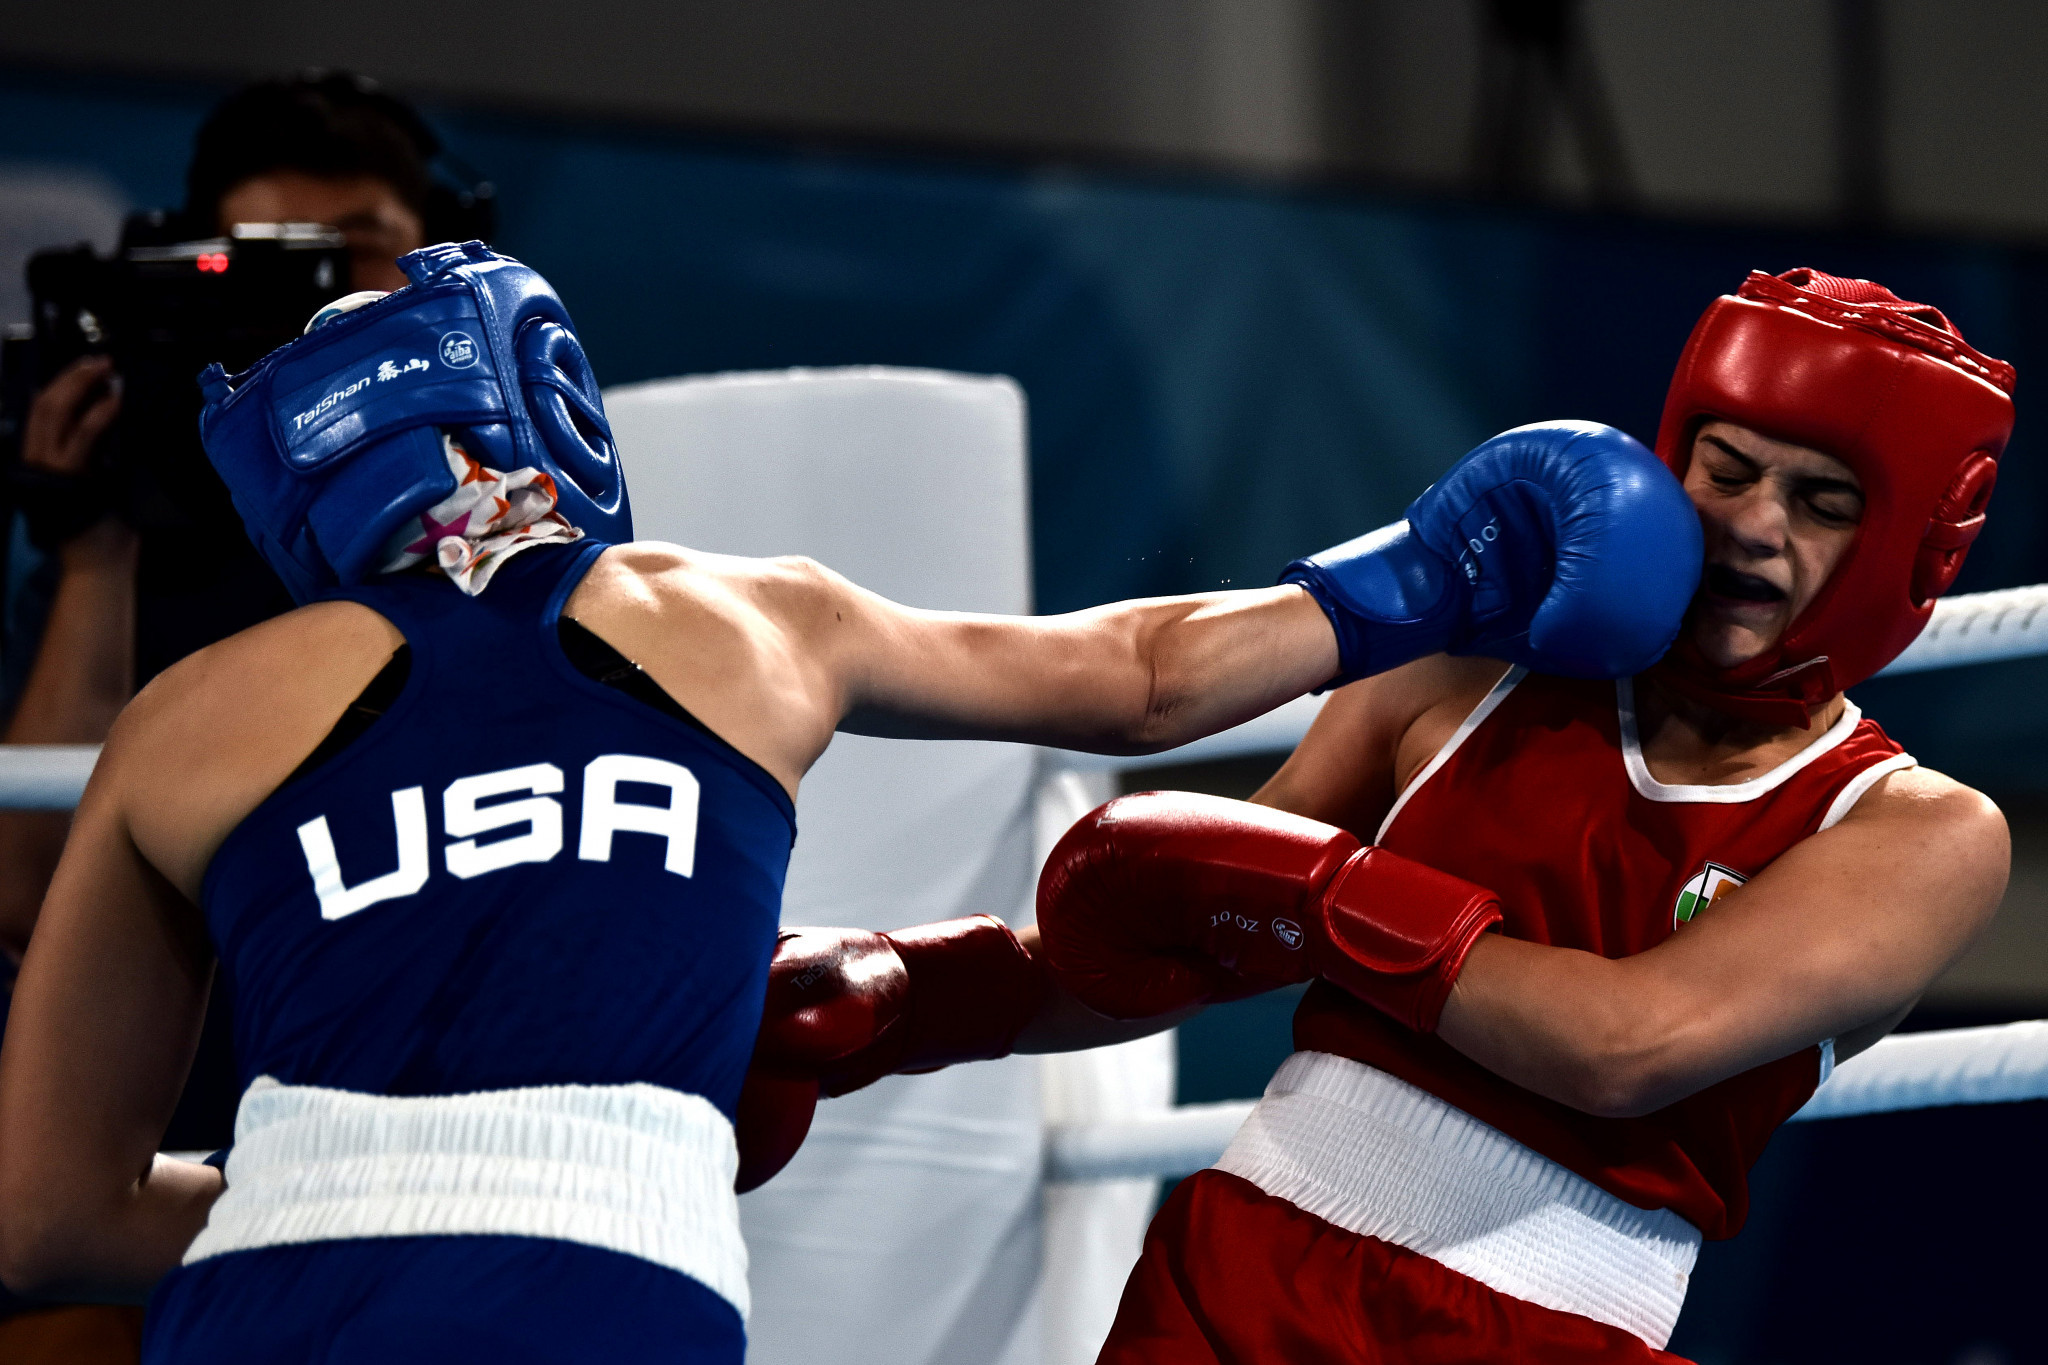 USA Boxing has chosen not to sent athletes to compete at the Youth World Boxing Championships ©Getty Images